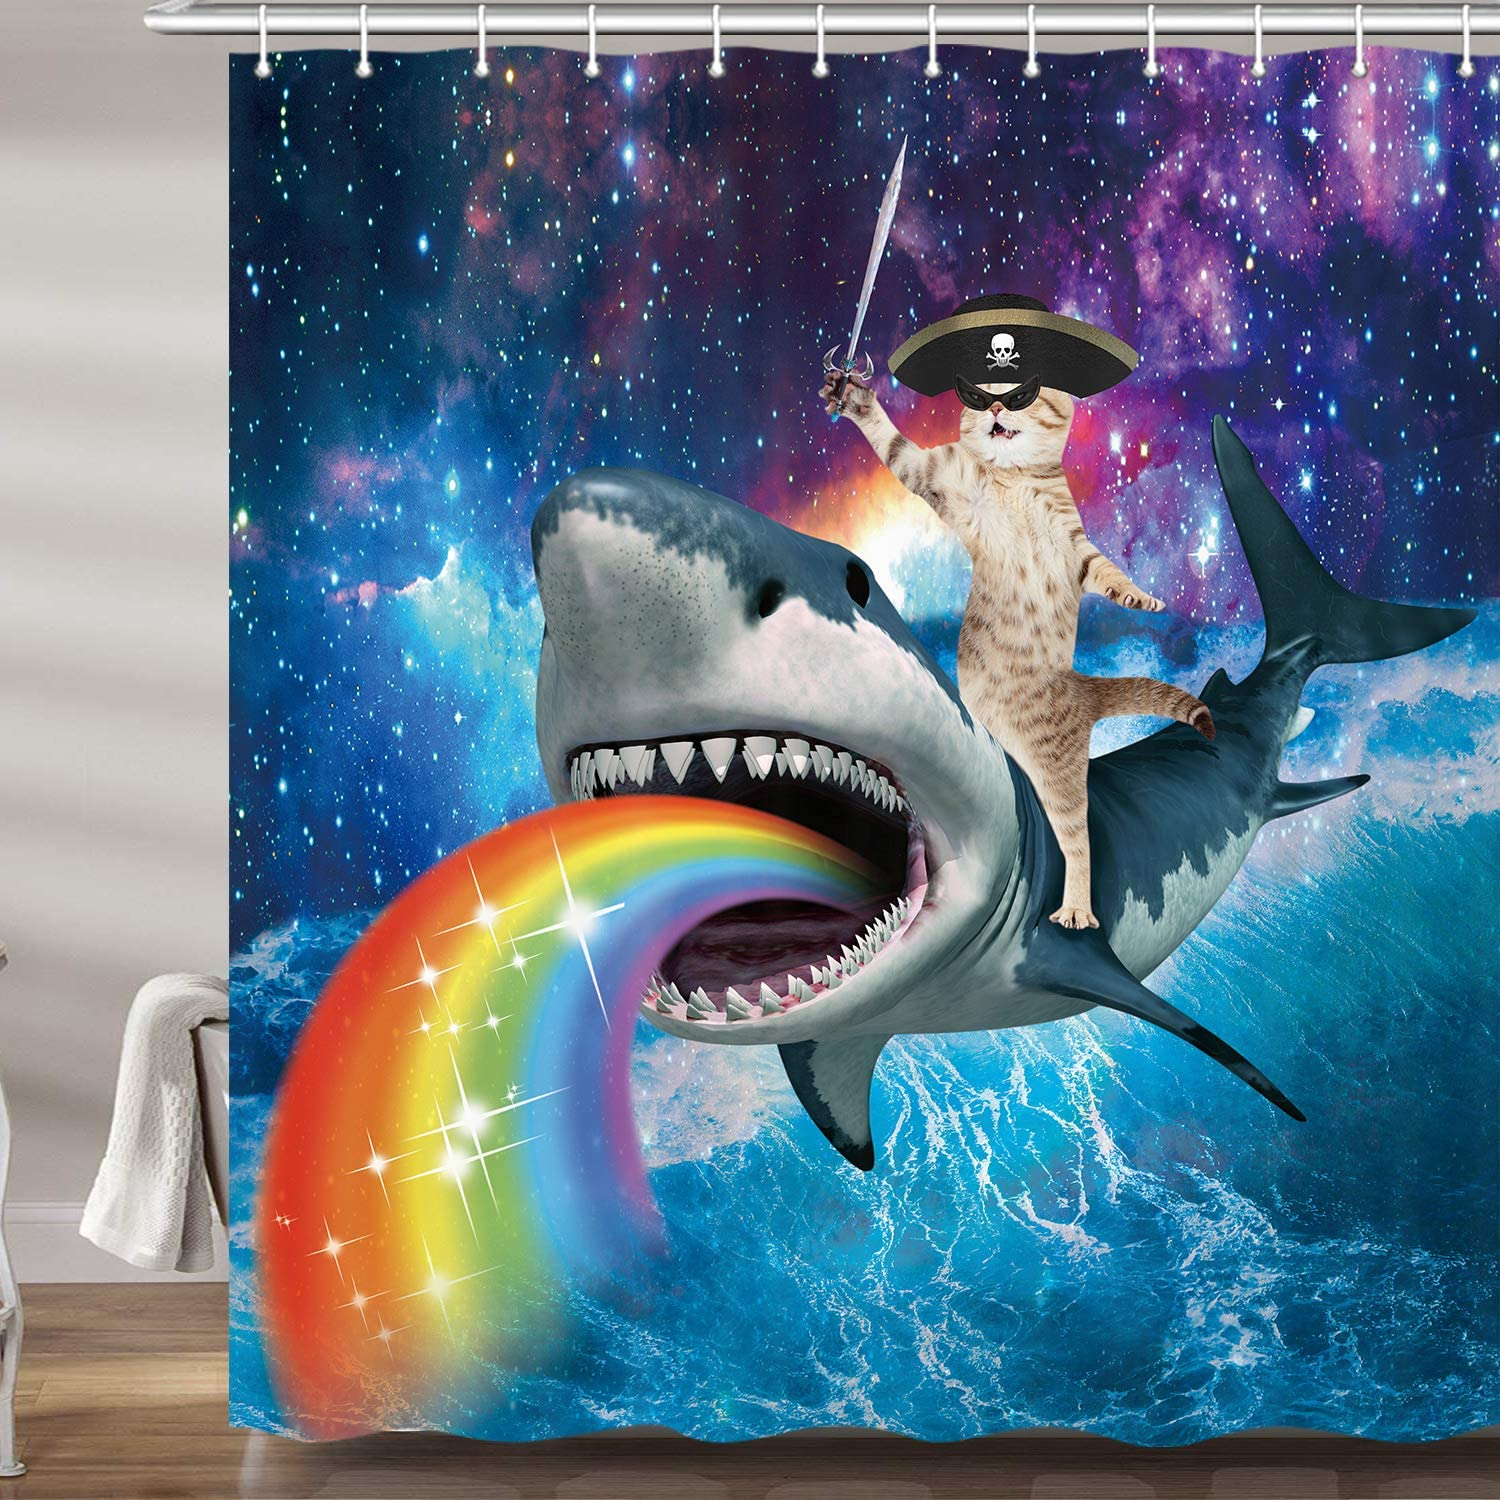 """JAWO Funny Pirate Cat Shower Curtains for Bathroom, Cool Cat Riding Shark in Universe Galaxy Bath Curtain Set, Ocean Wave Nautical Fabric Accessories Restroom Decor 12 Hooks Included (69"""" W X 72"""" H)"""